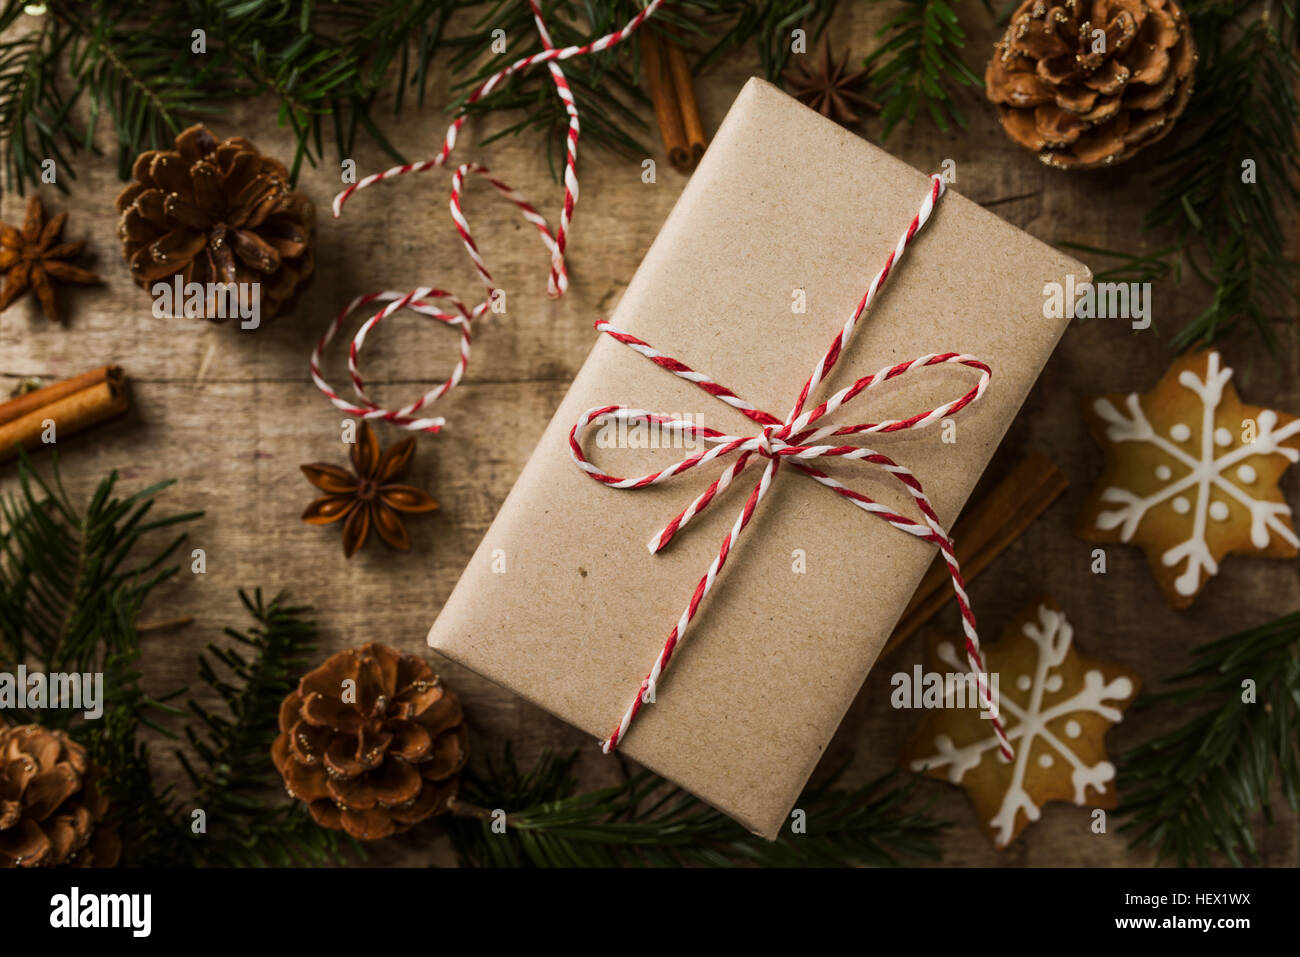 Christmas present wrapped in kraft paper surrounded of natural d - Stock Image